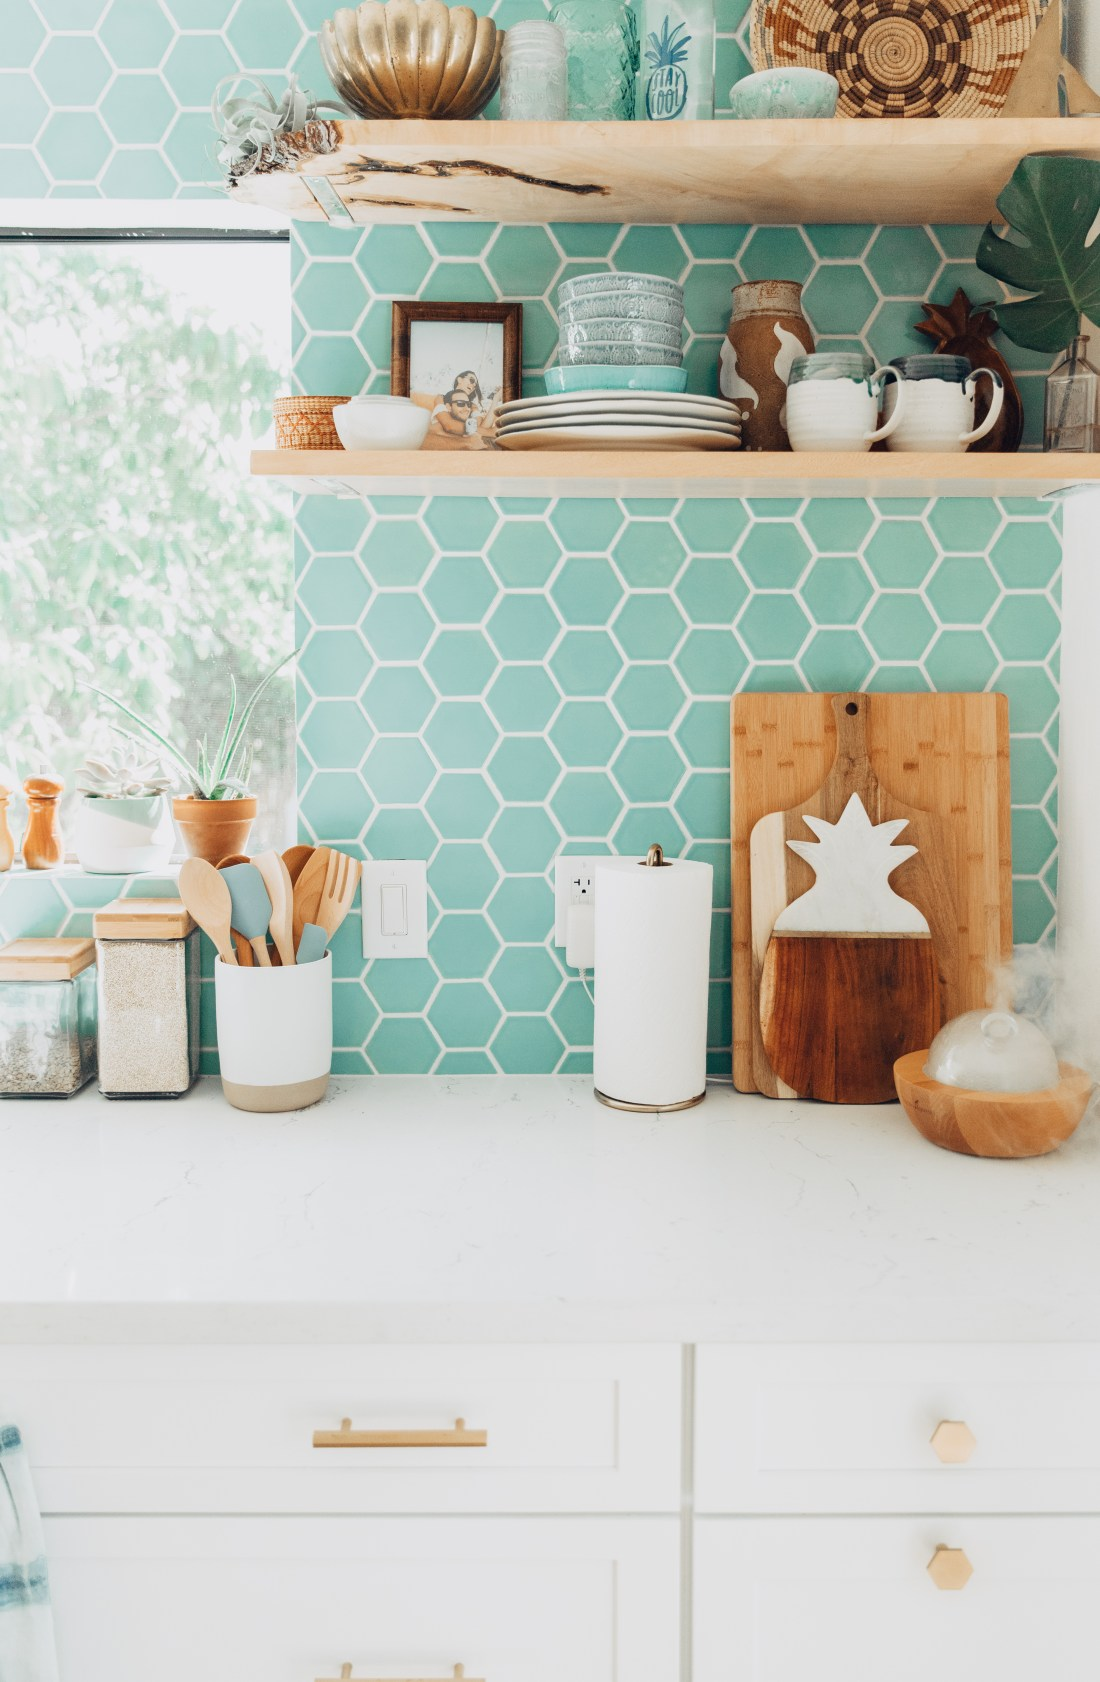 Open Shelving Inspiration | Kitchen Inspo | Kitchen Renovation Reveal | Tropical, Modern, Bohemian Kitchen | Aqua Blue Hexagon Tile Backsplash | Unique Kitchen | Tropical Kitchen | Hawaiian Home Renovation Reveal | White Cabinets with Brass Hardware | Hexagon Brass Cabinet Pulls | Eclectic Kitchen Style | Shibori Towels | Open Shelving via @elanaloo + elanaloo.com